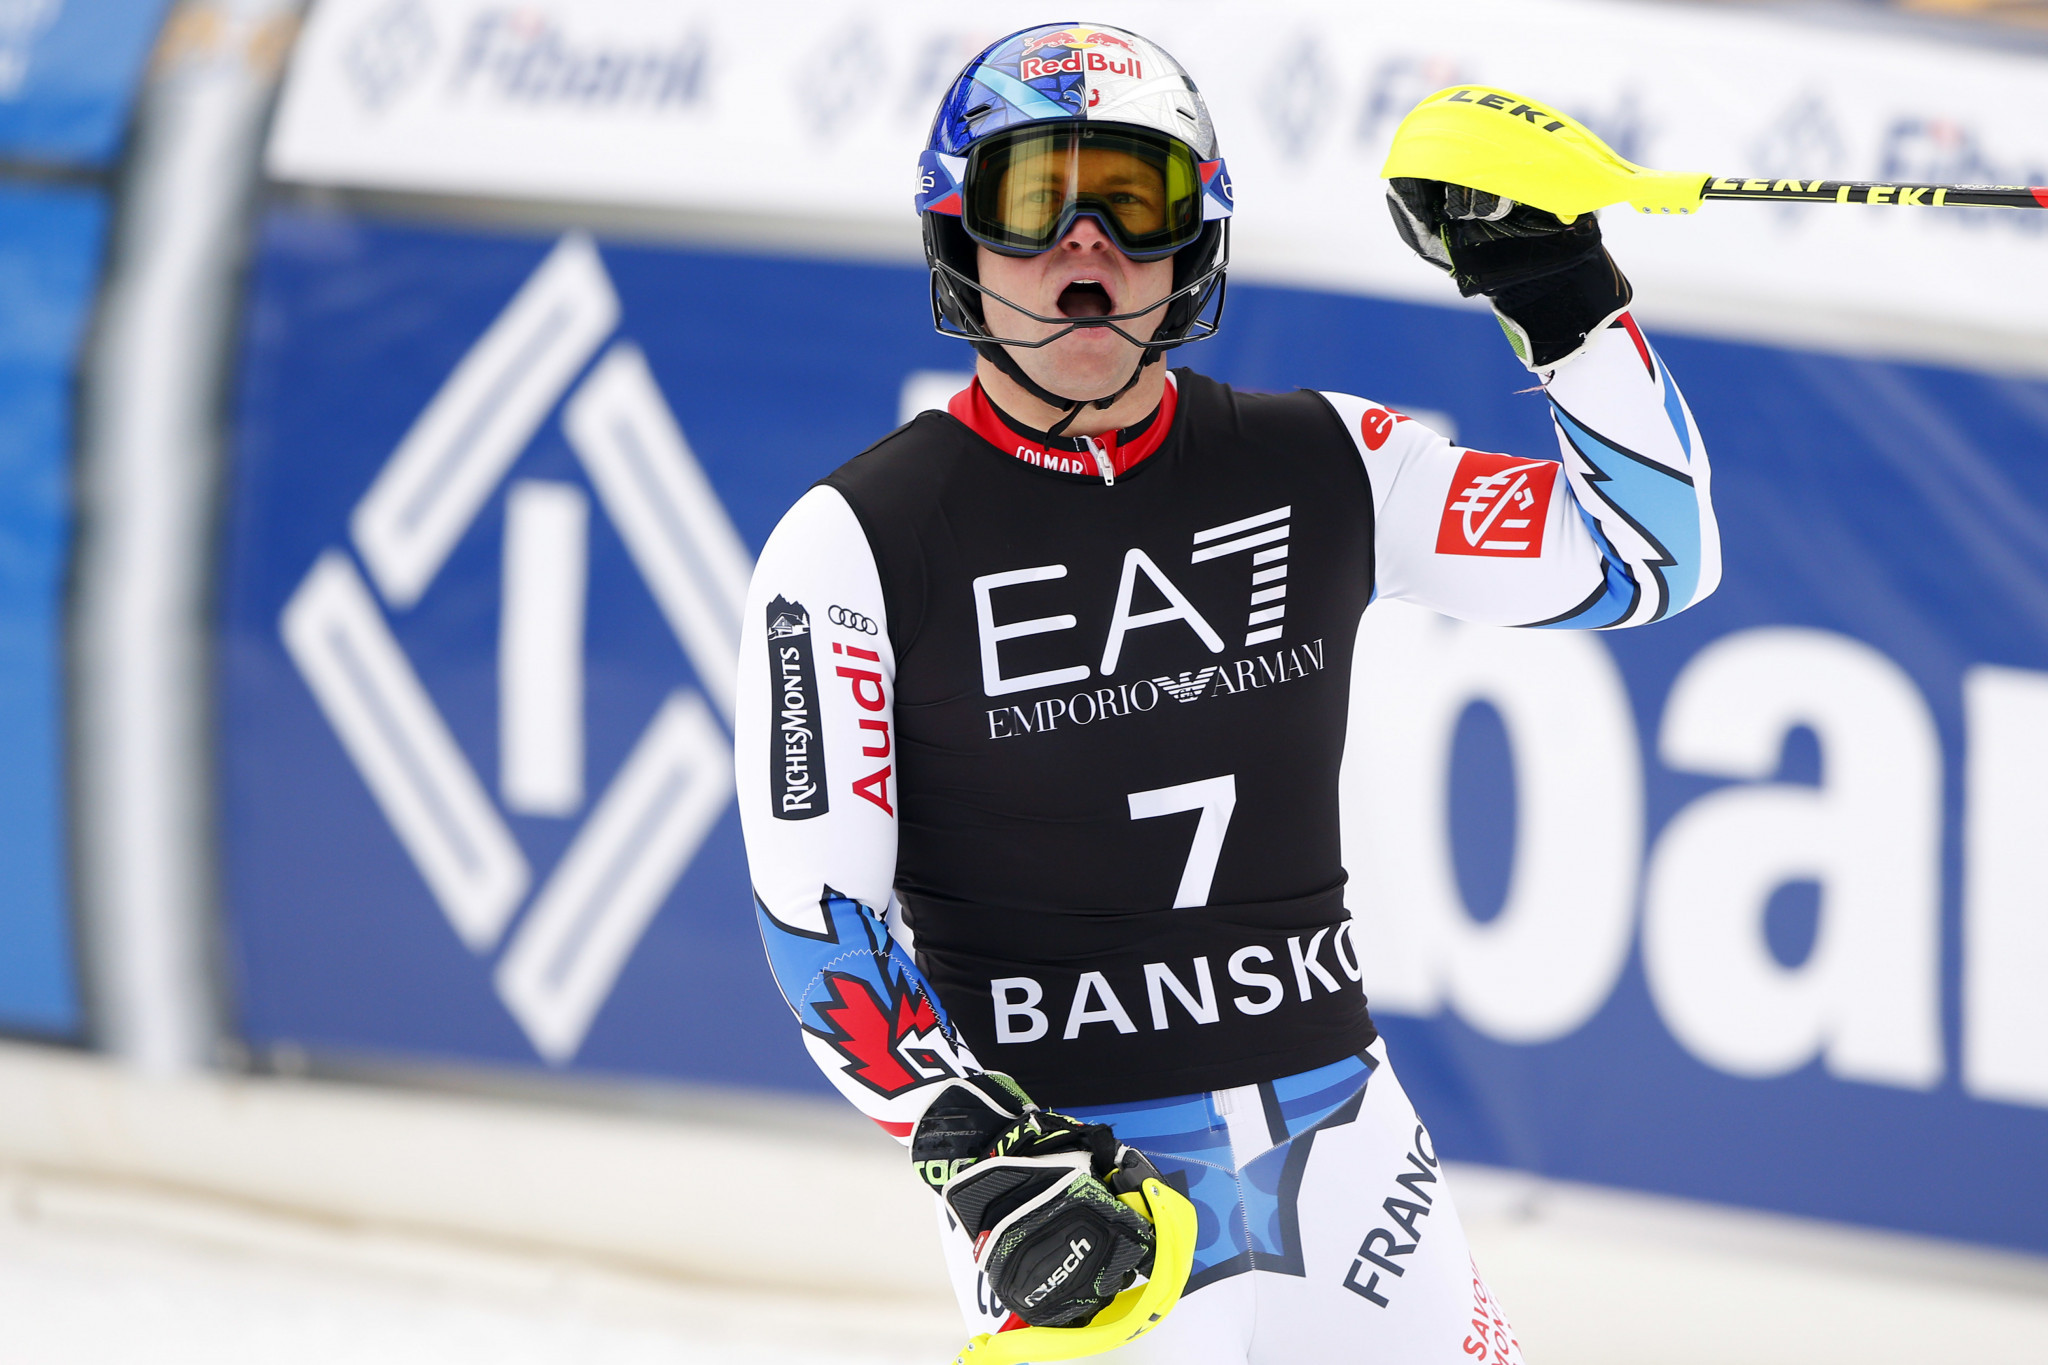 France's Alexis Pinturault won the Alpine combined event at the FIS Alpine Skiing World Cup in Bankso today, securing his fifth overall title in the discipline ©Getty Images